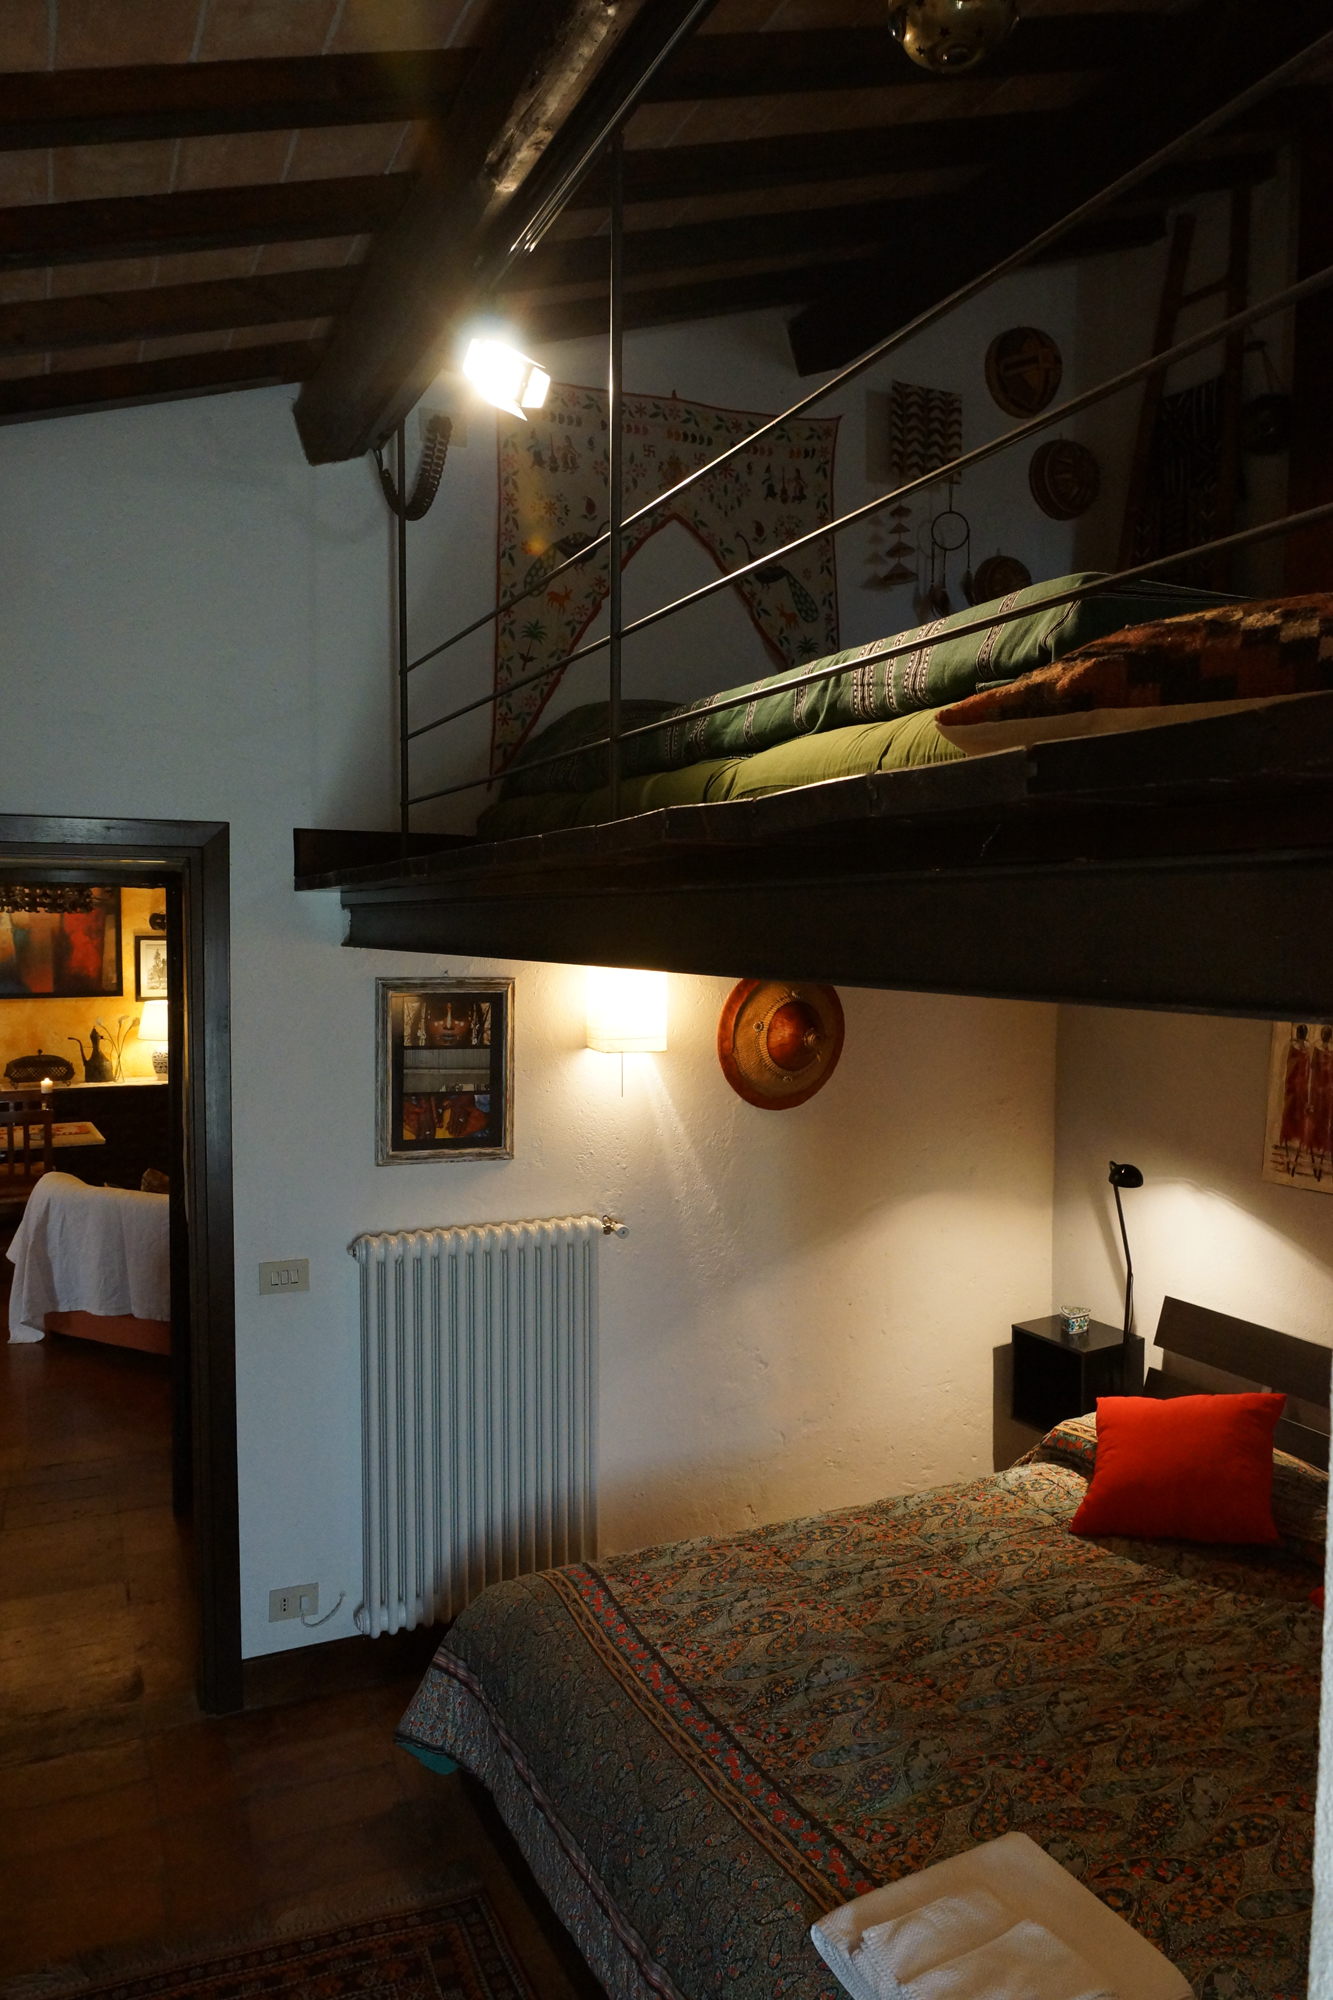 Vacanze in Umbria - Bed & Breakfast - umbria (MASSA MARTANA -  Perugia - PG) ~ camera da letto area soppalco